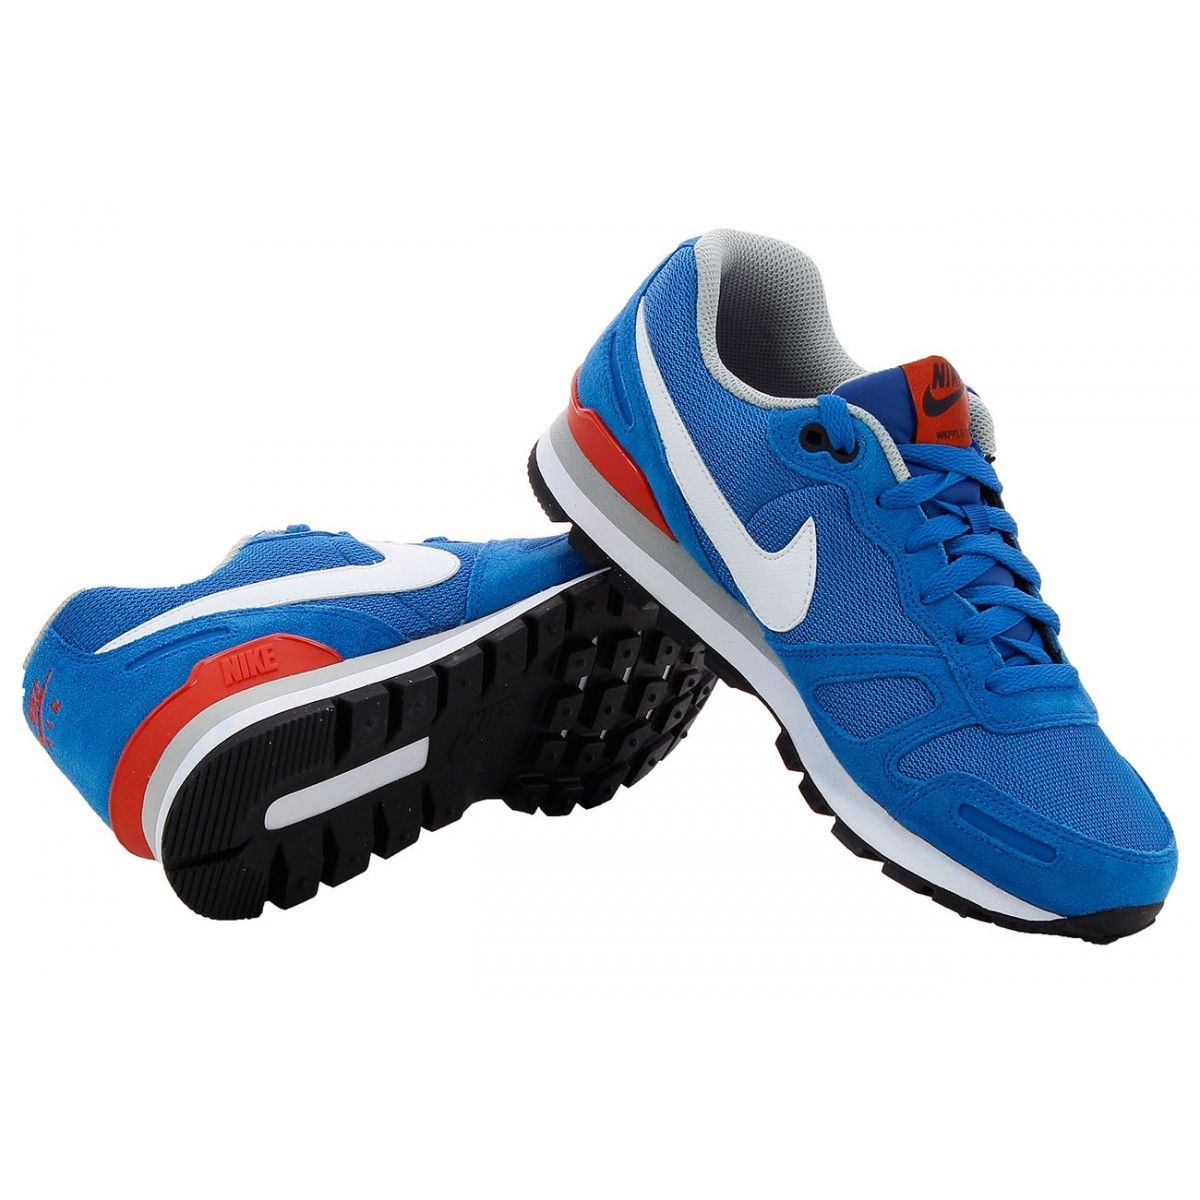 Basket Nike Air Waffle Trainer 429628 406 Taille : 40 1